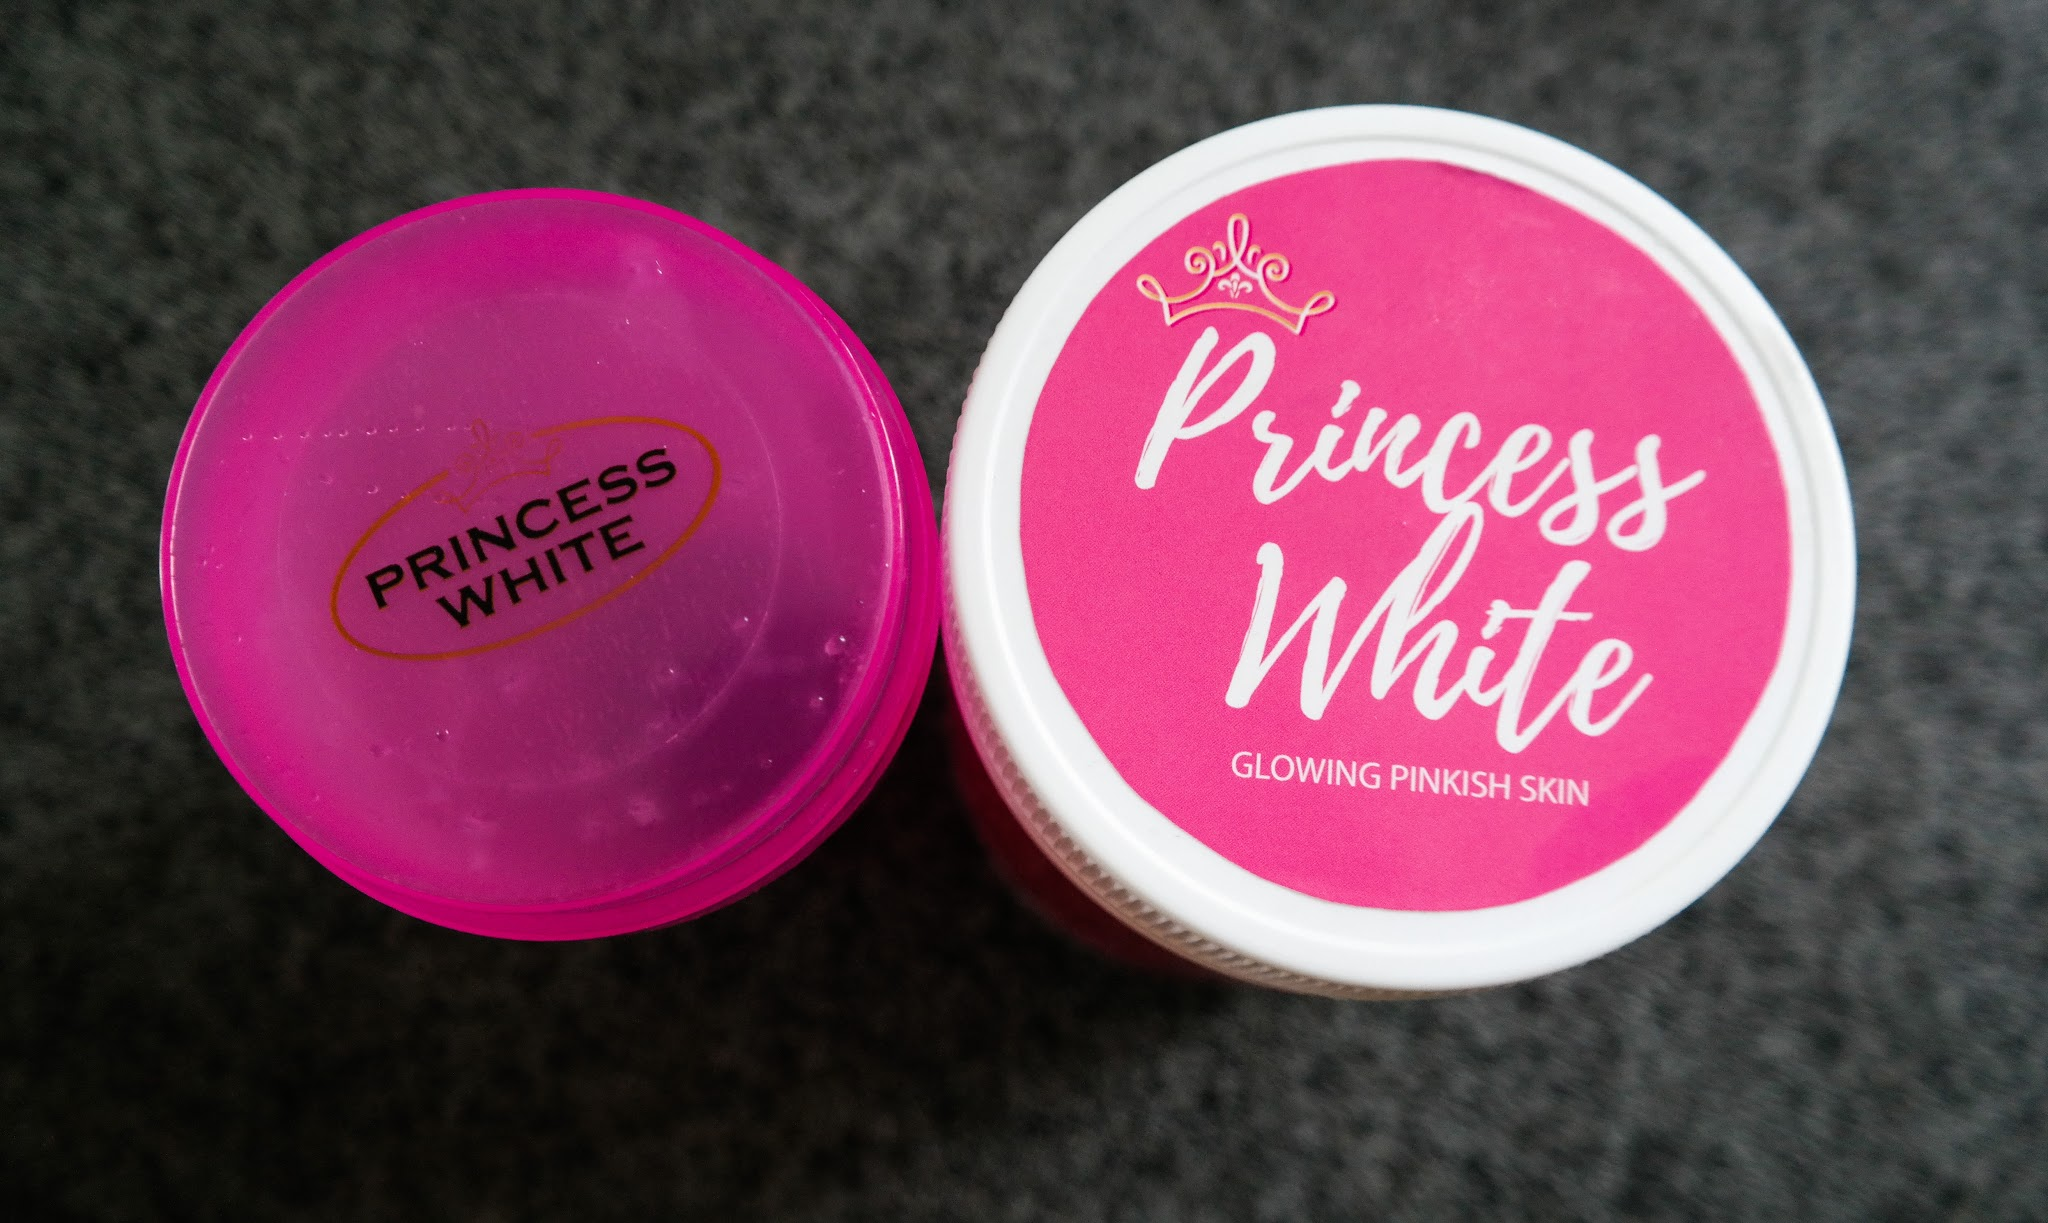 princess white drinks, Get the Glowing Pinkish Skin with Princess White, Princess White Whitening Drinks,testimoni Princess White Drinks,acai berry drink, whitening drink, malaysia most seller whitening drinks, malaysia top selling whitening drinks, supplement facts,